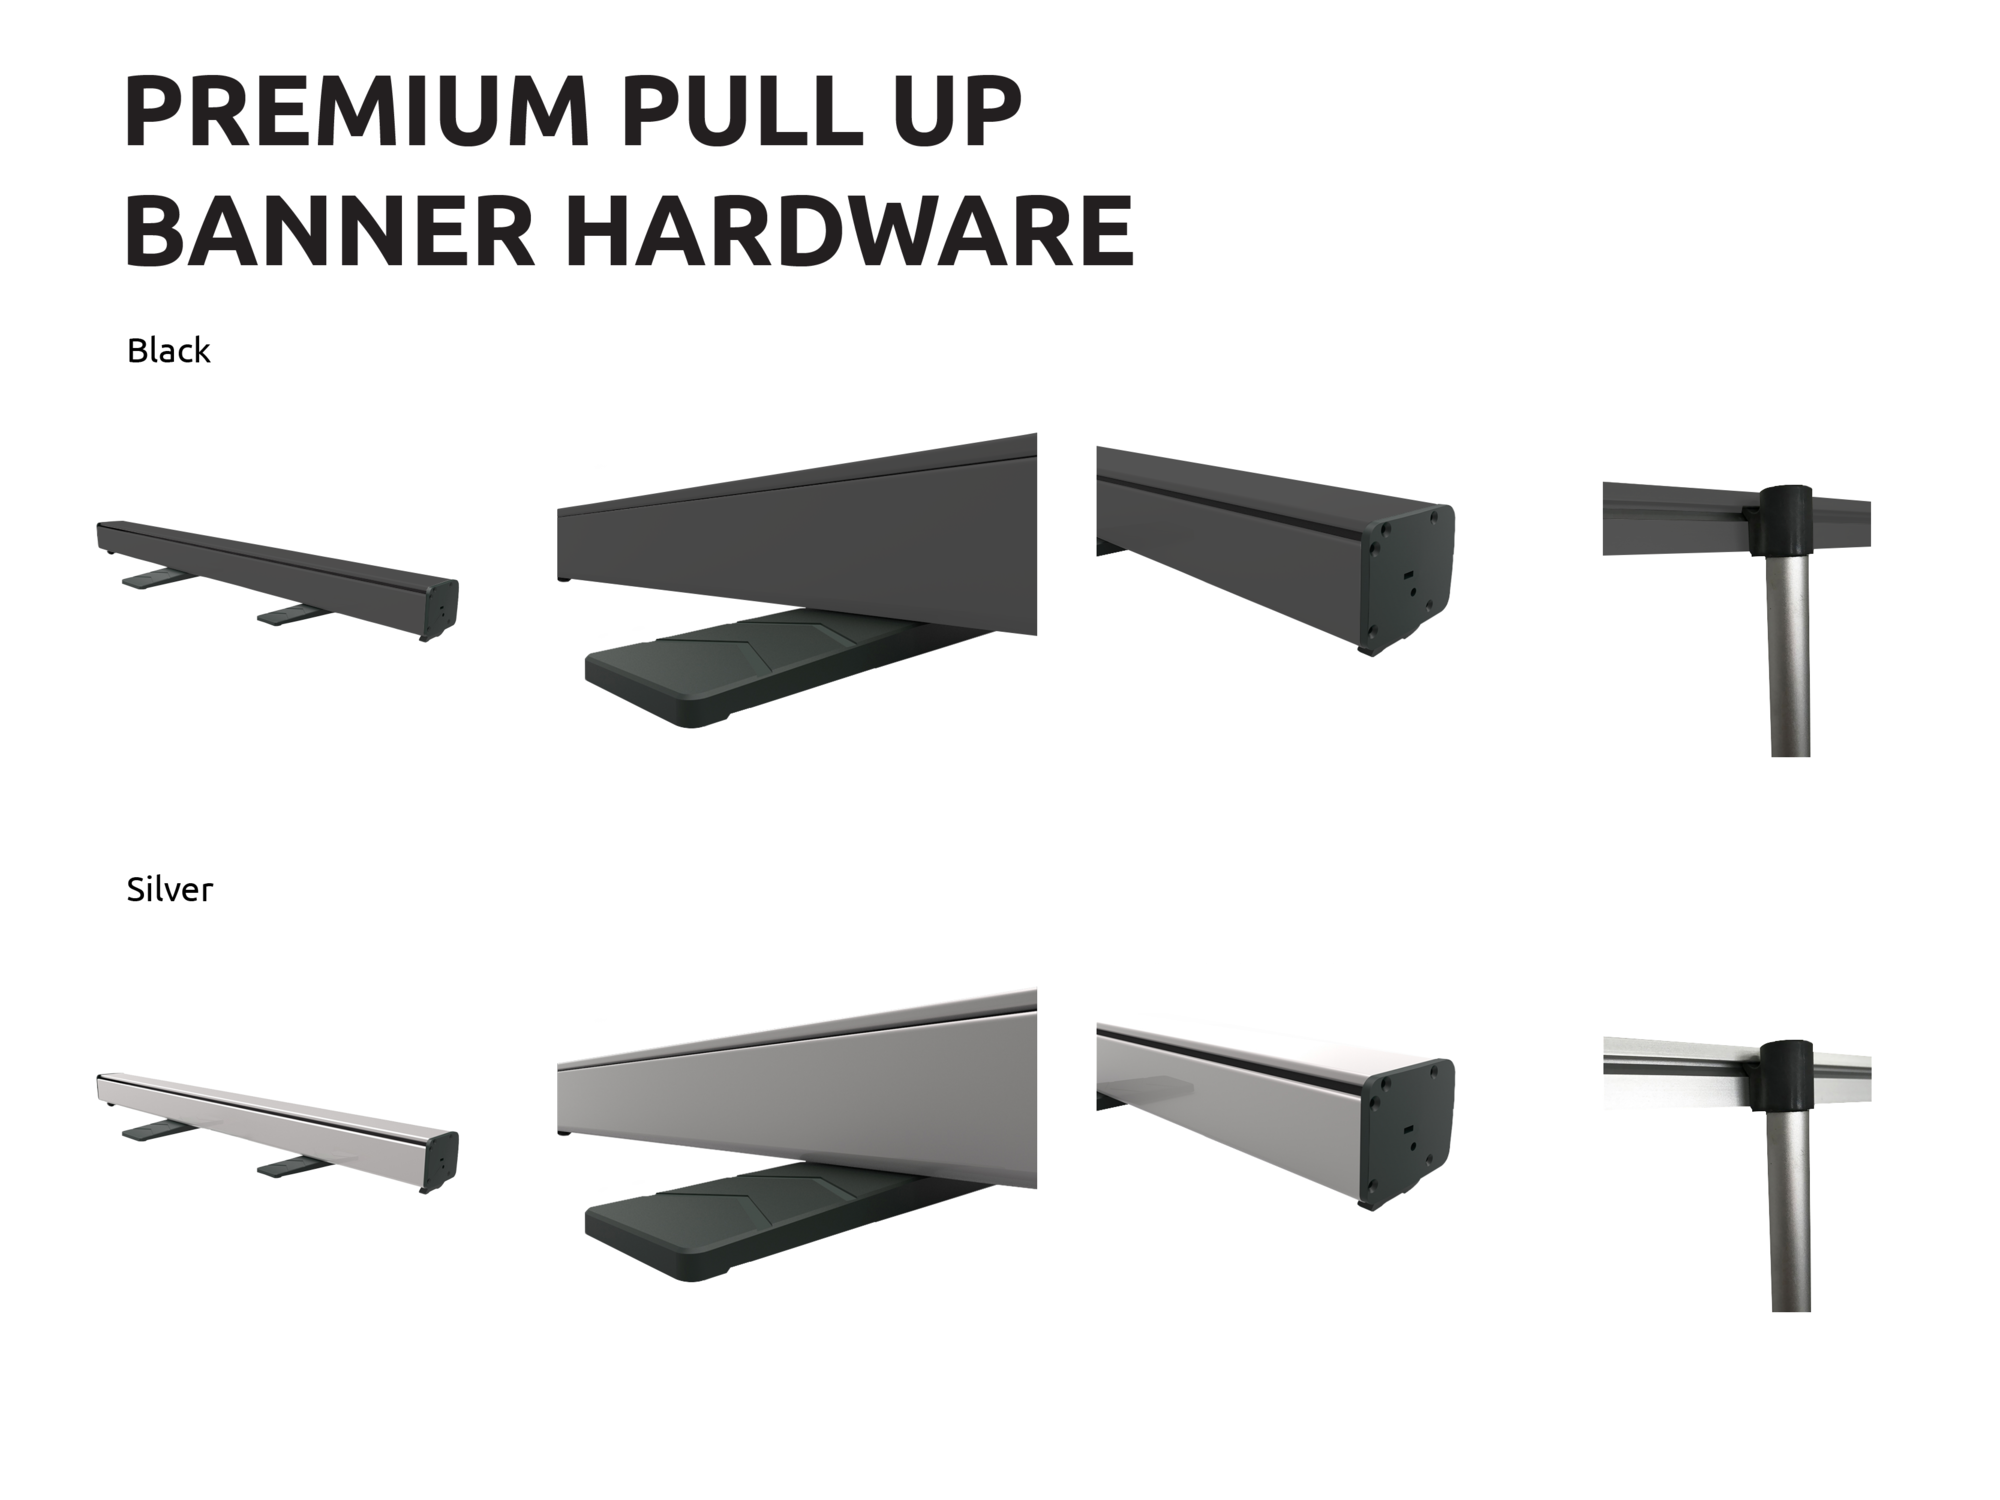 Premium Pull Up Banners Sunshine Coast Hardware